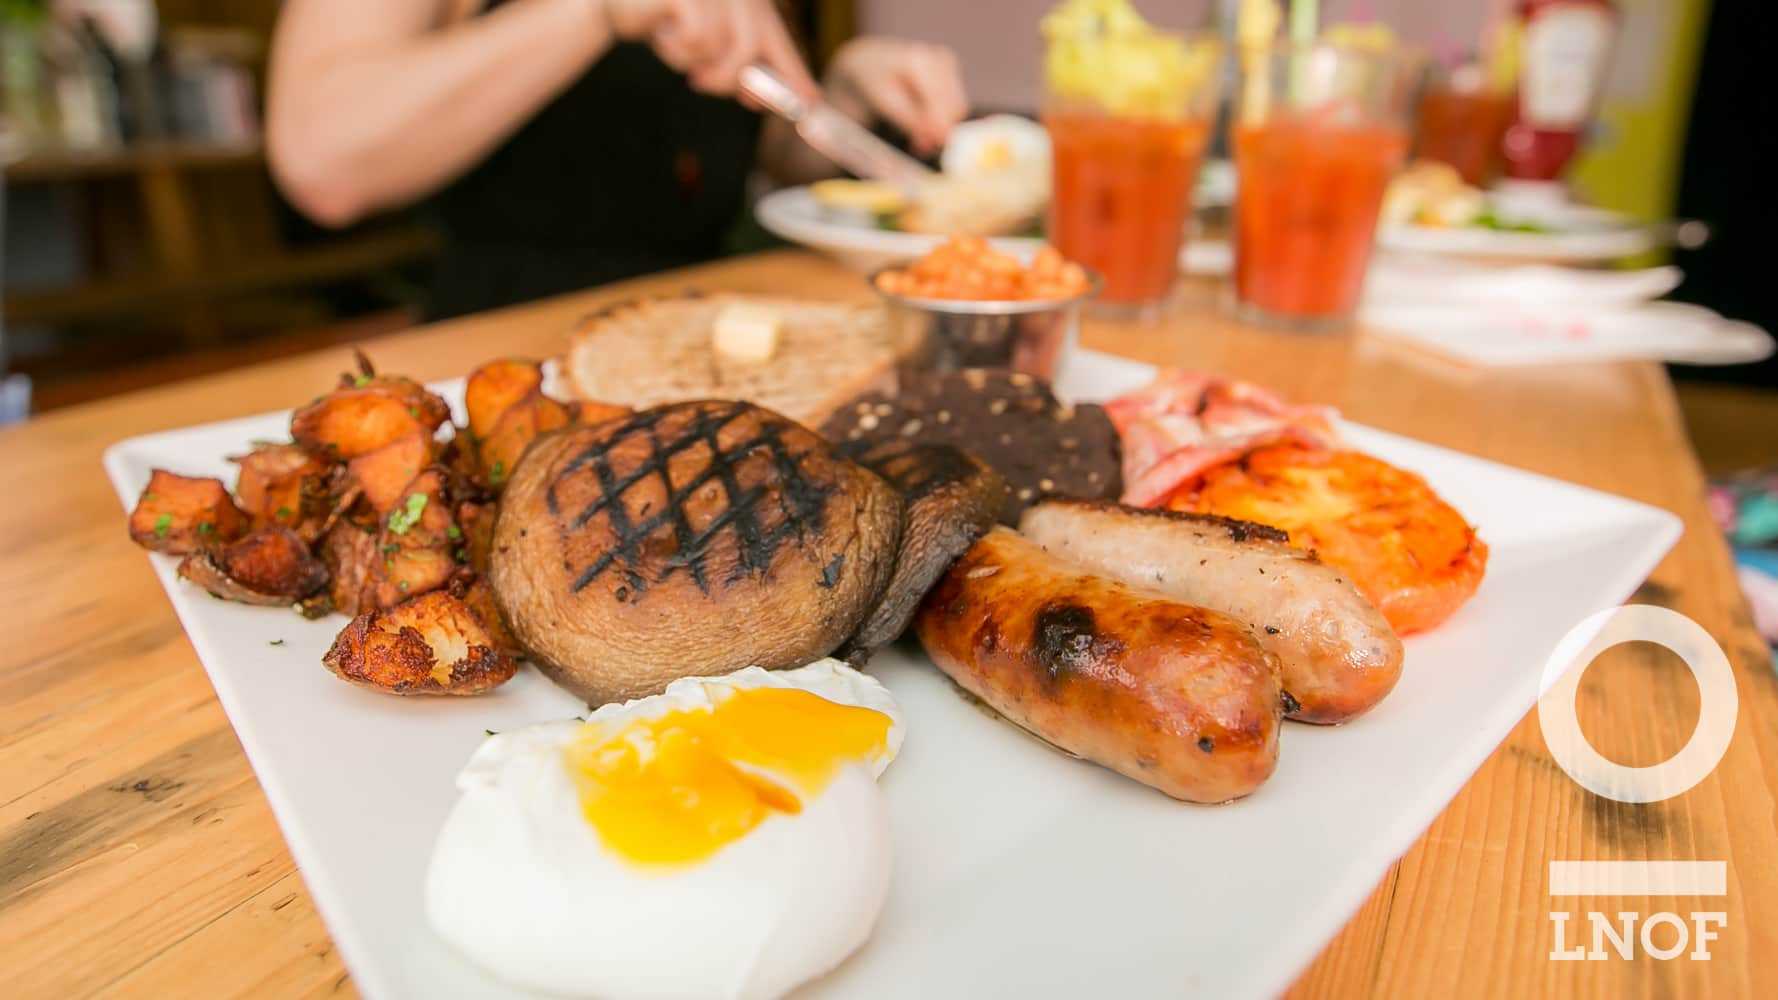 Full English hangover brekafast at Ernest in Newcastle upon Tyne